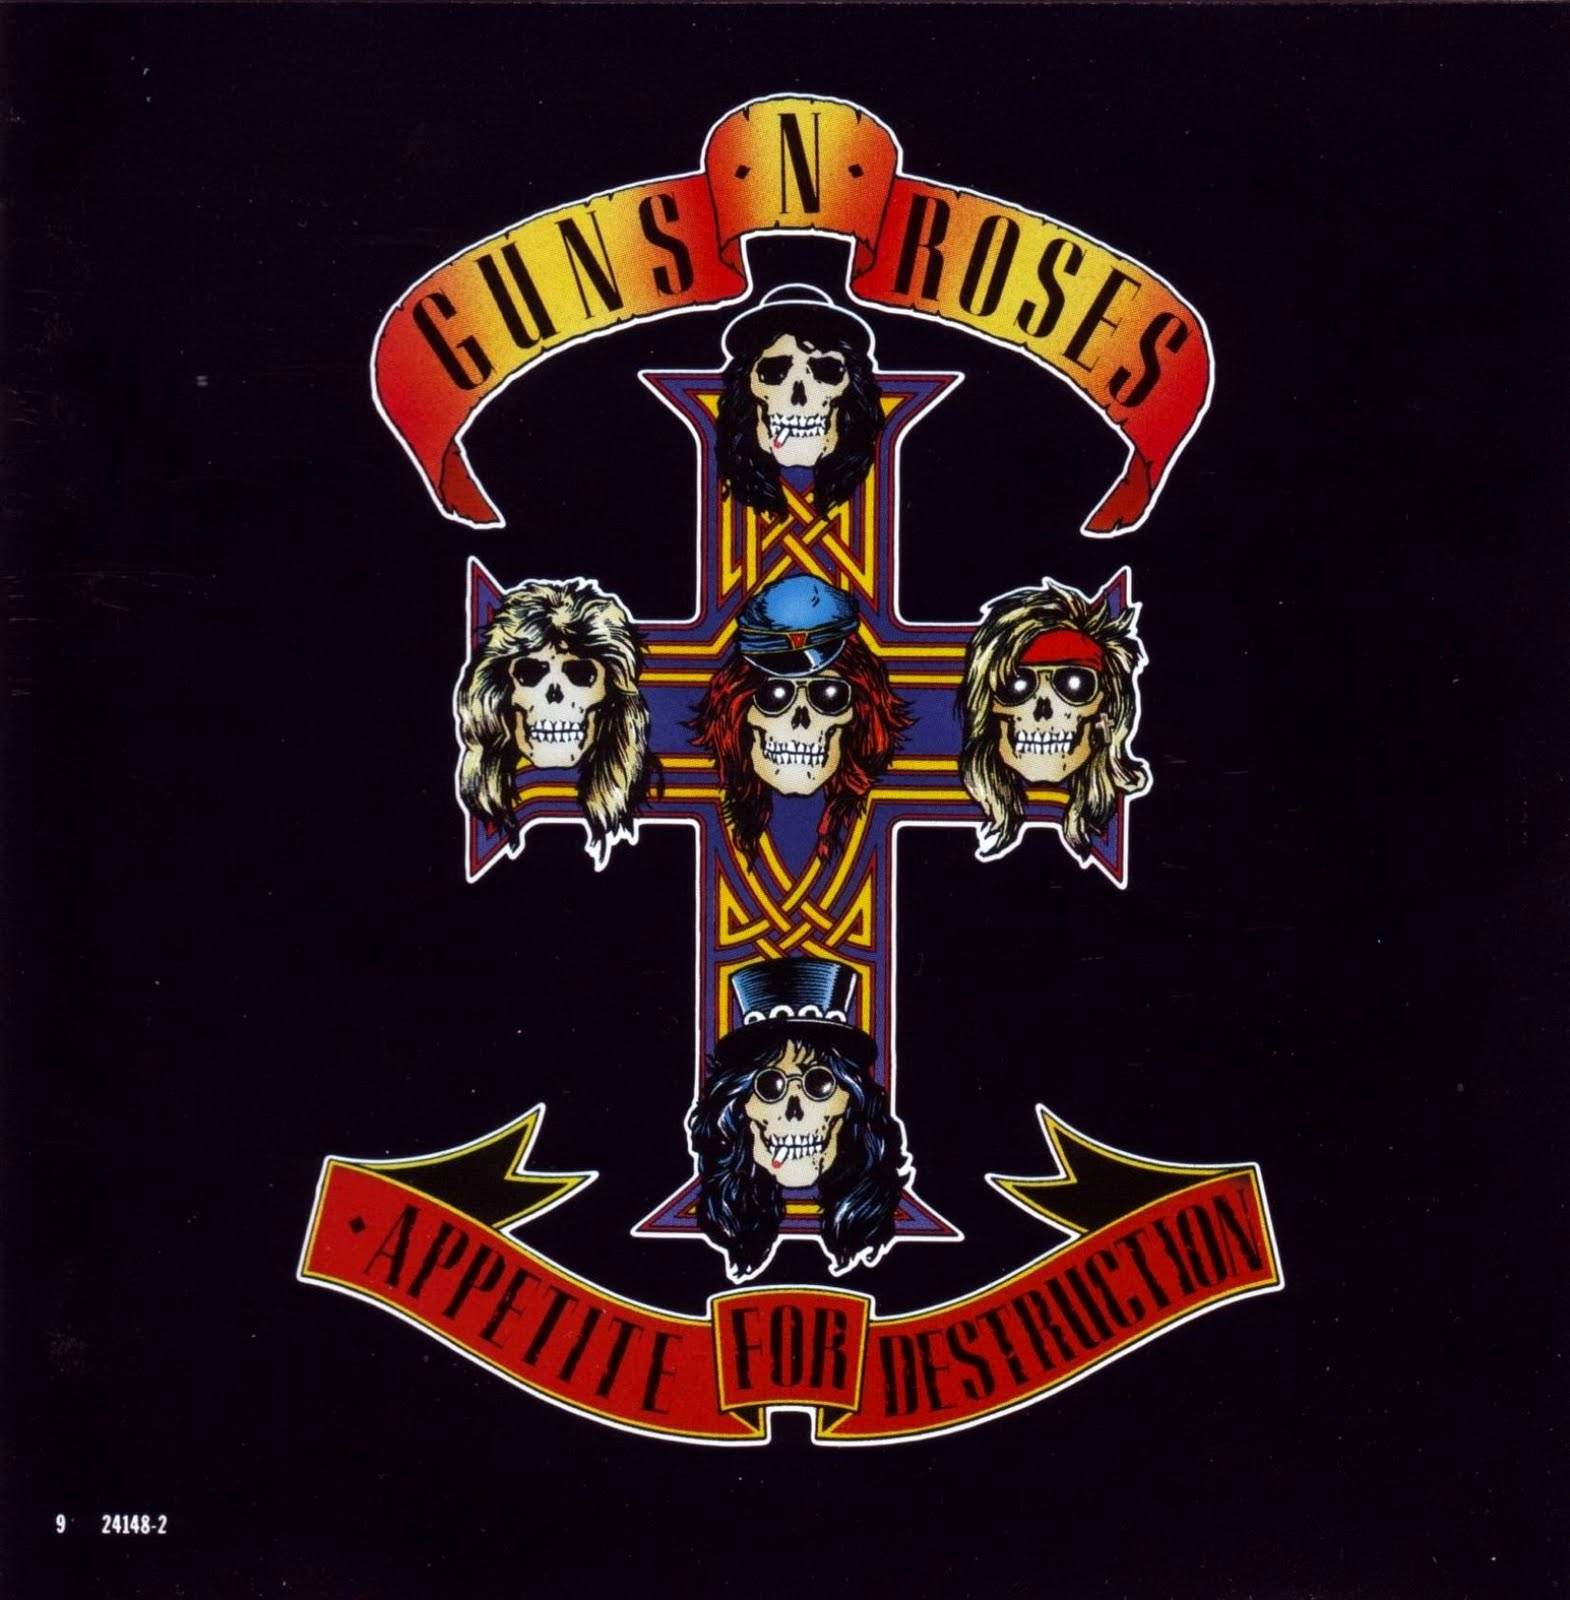 http://2.bp.blogspot.com/_rK1yR9xfc2Q/S60B3pmEsQI/AAAAAAAABaE/kIWVFZ-3_5U/s1600/%5BAllCDCovers%5D_guns_n_roses_appetite_for_destruction_1987_retail_cd-front.jpg